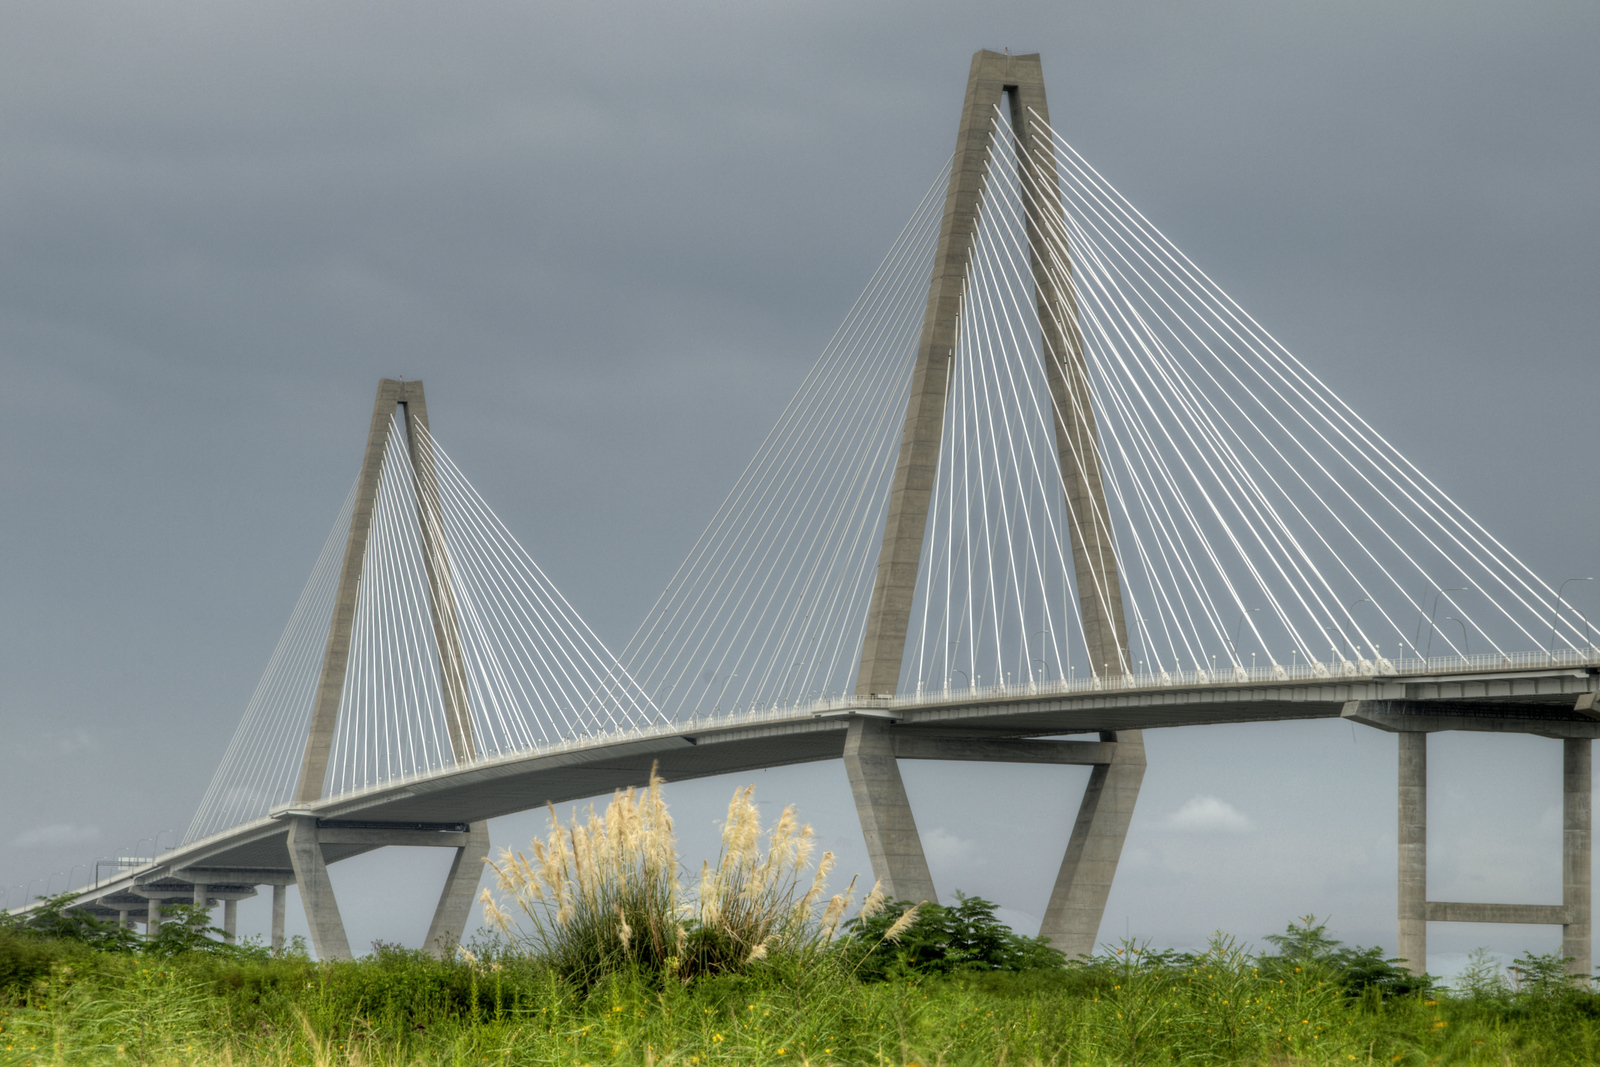 The Arthur Ravenel, Jr. Bridge stands out against an overcast sky in Mt. Pleasant, SC on Tuesday, September 2, 2014. Copyright 2014 Jason Barnette